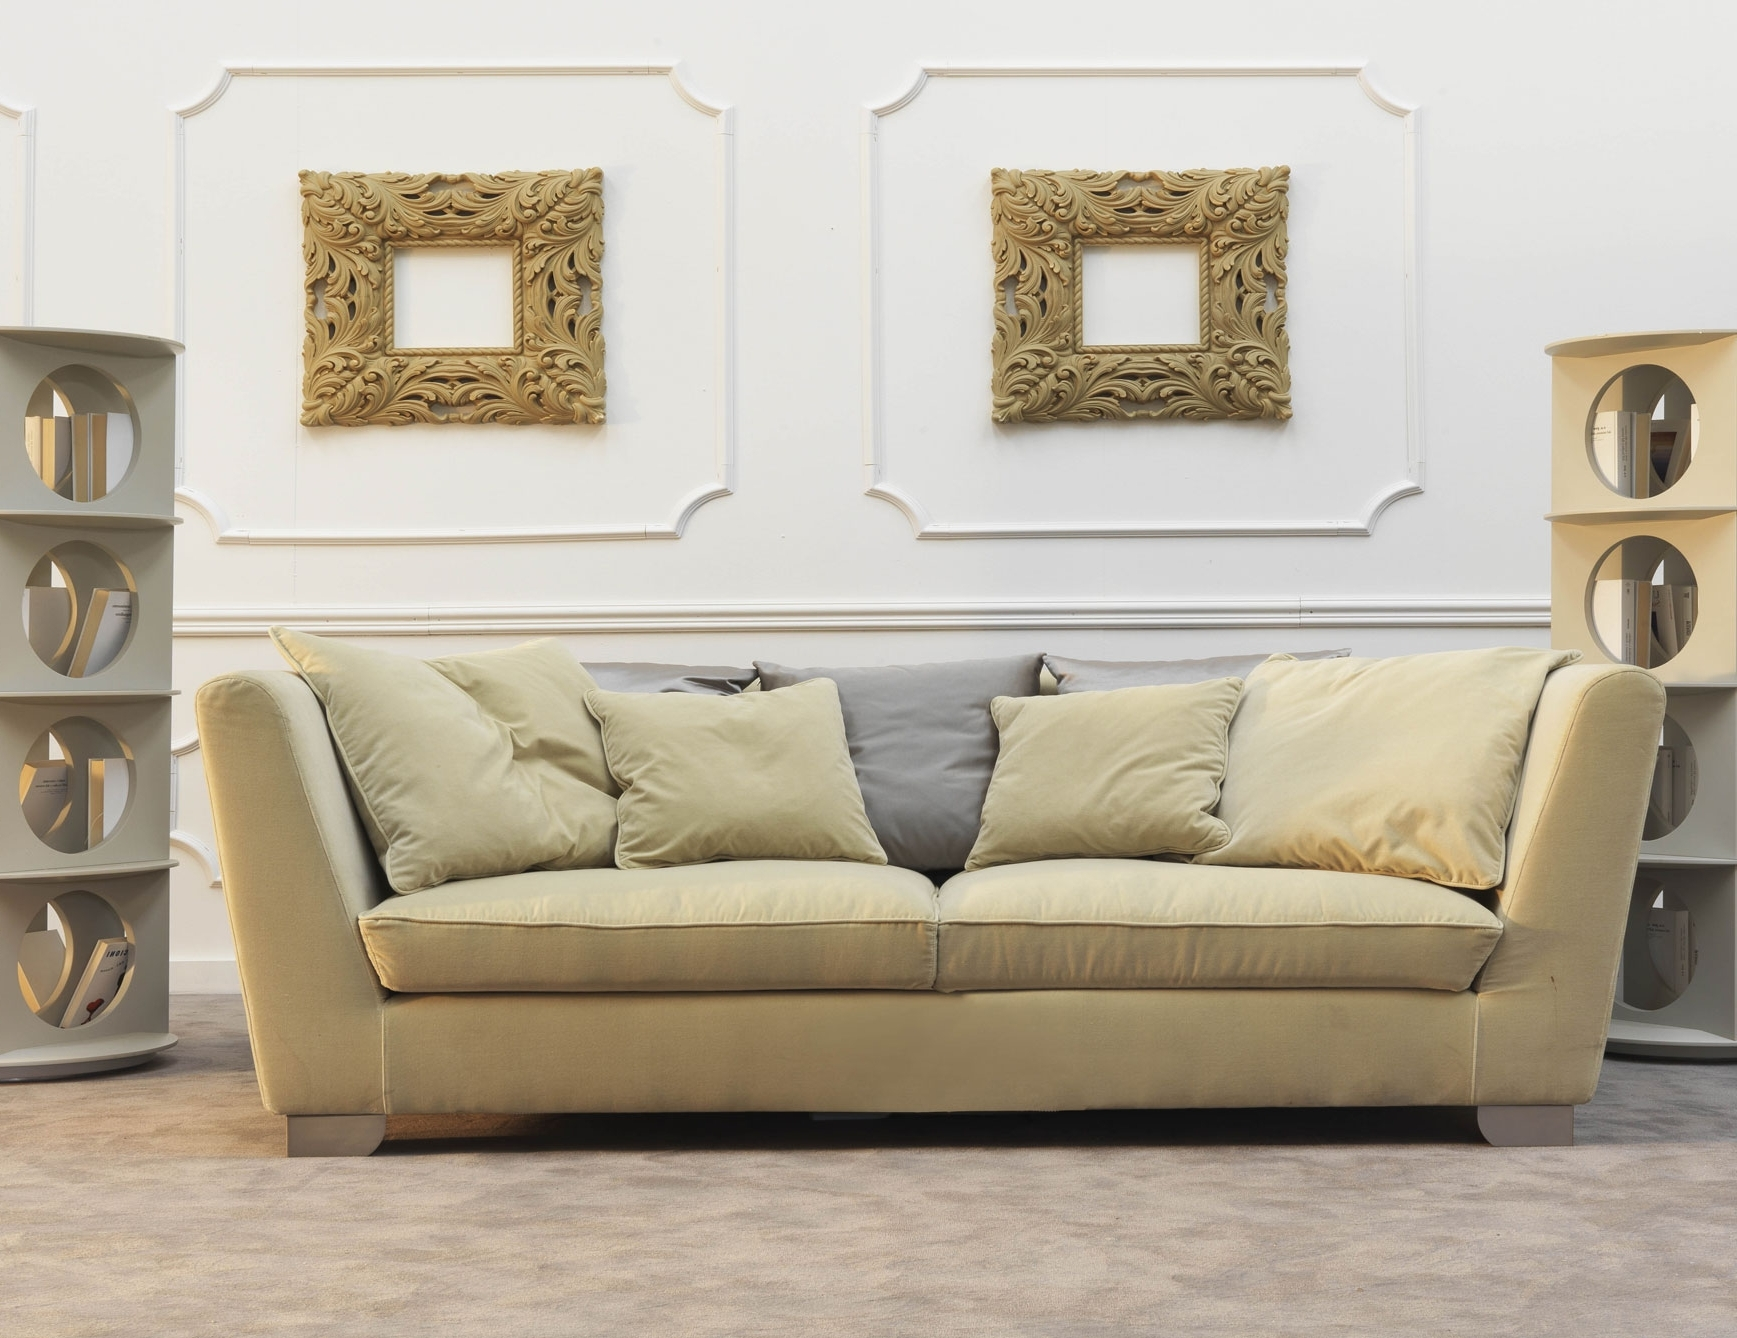 Elegant Sofa And Chairs 85 For Sofas And Couches Ideas With Sofa Throughout Favorite Elegant Sofas And Chairs (View 6 of 20)